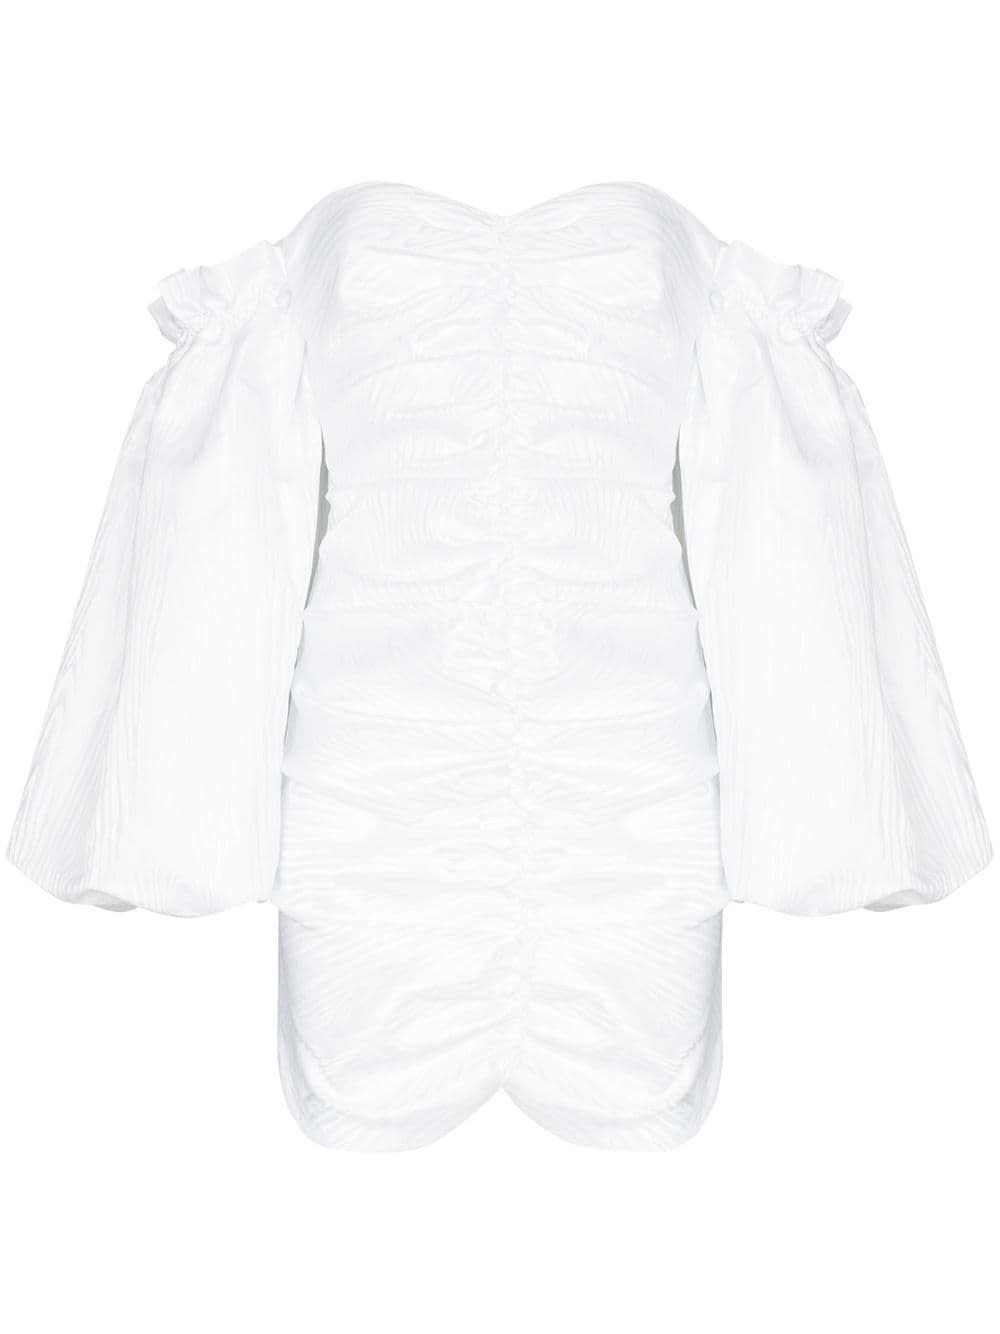 Rotate Birger Christensen Linings PHOEBE WHITE DRESS WITH PUFF SLEEVES